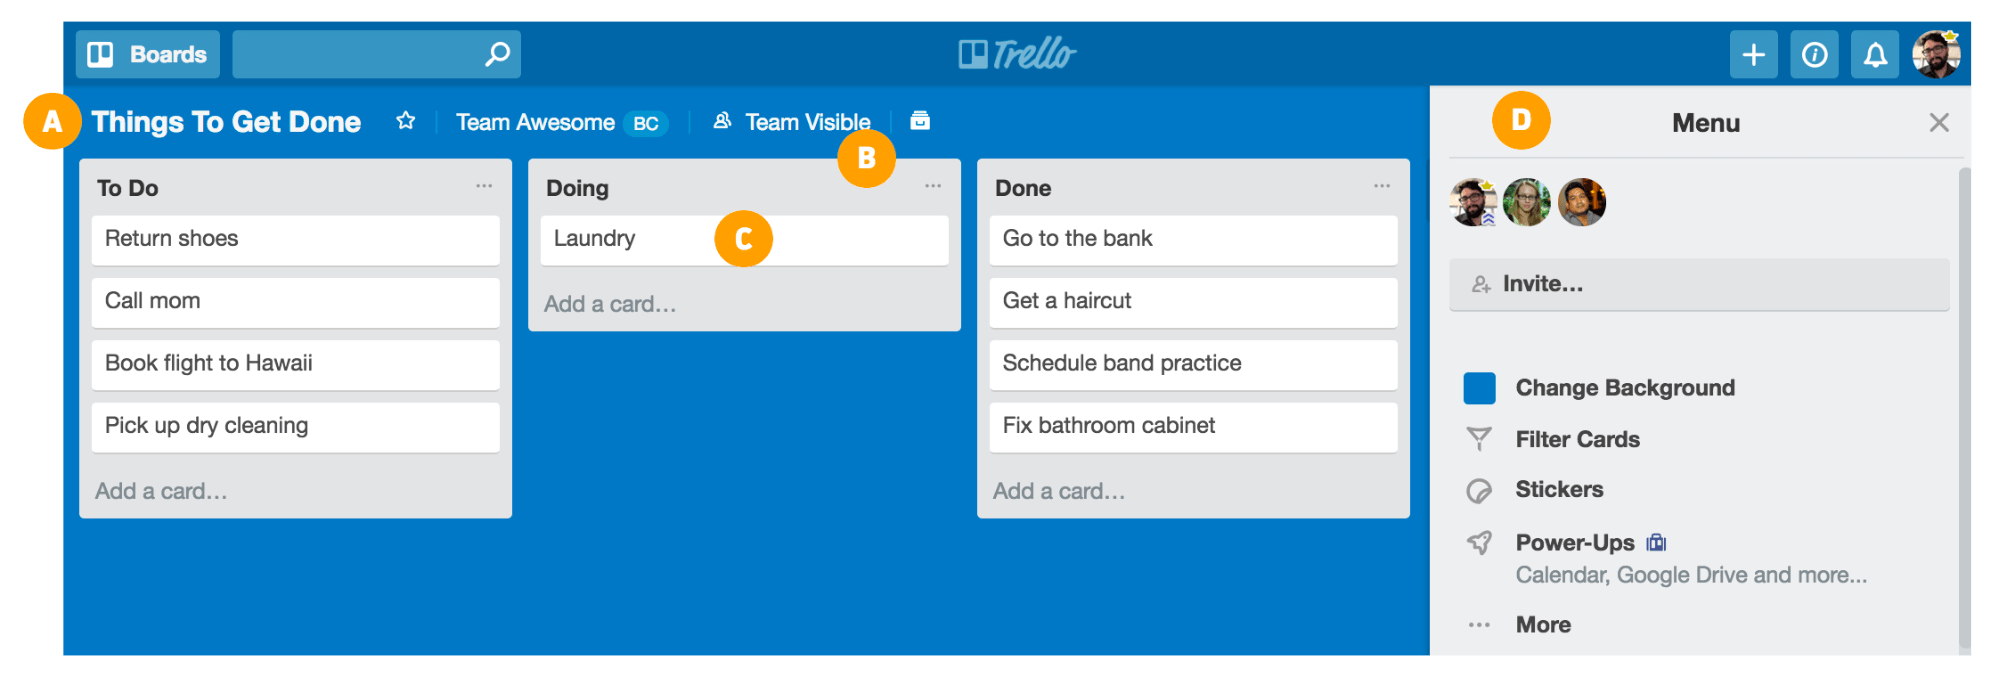 A Brief Guide to Using Trello // Charmed Digital